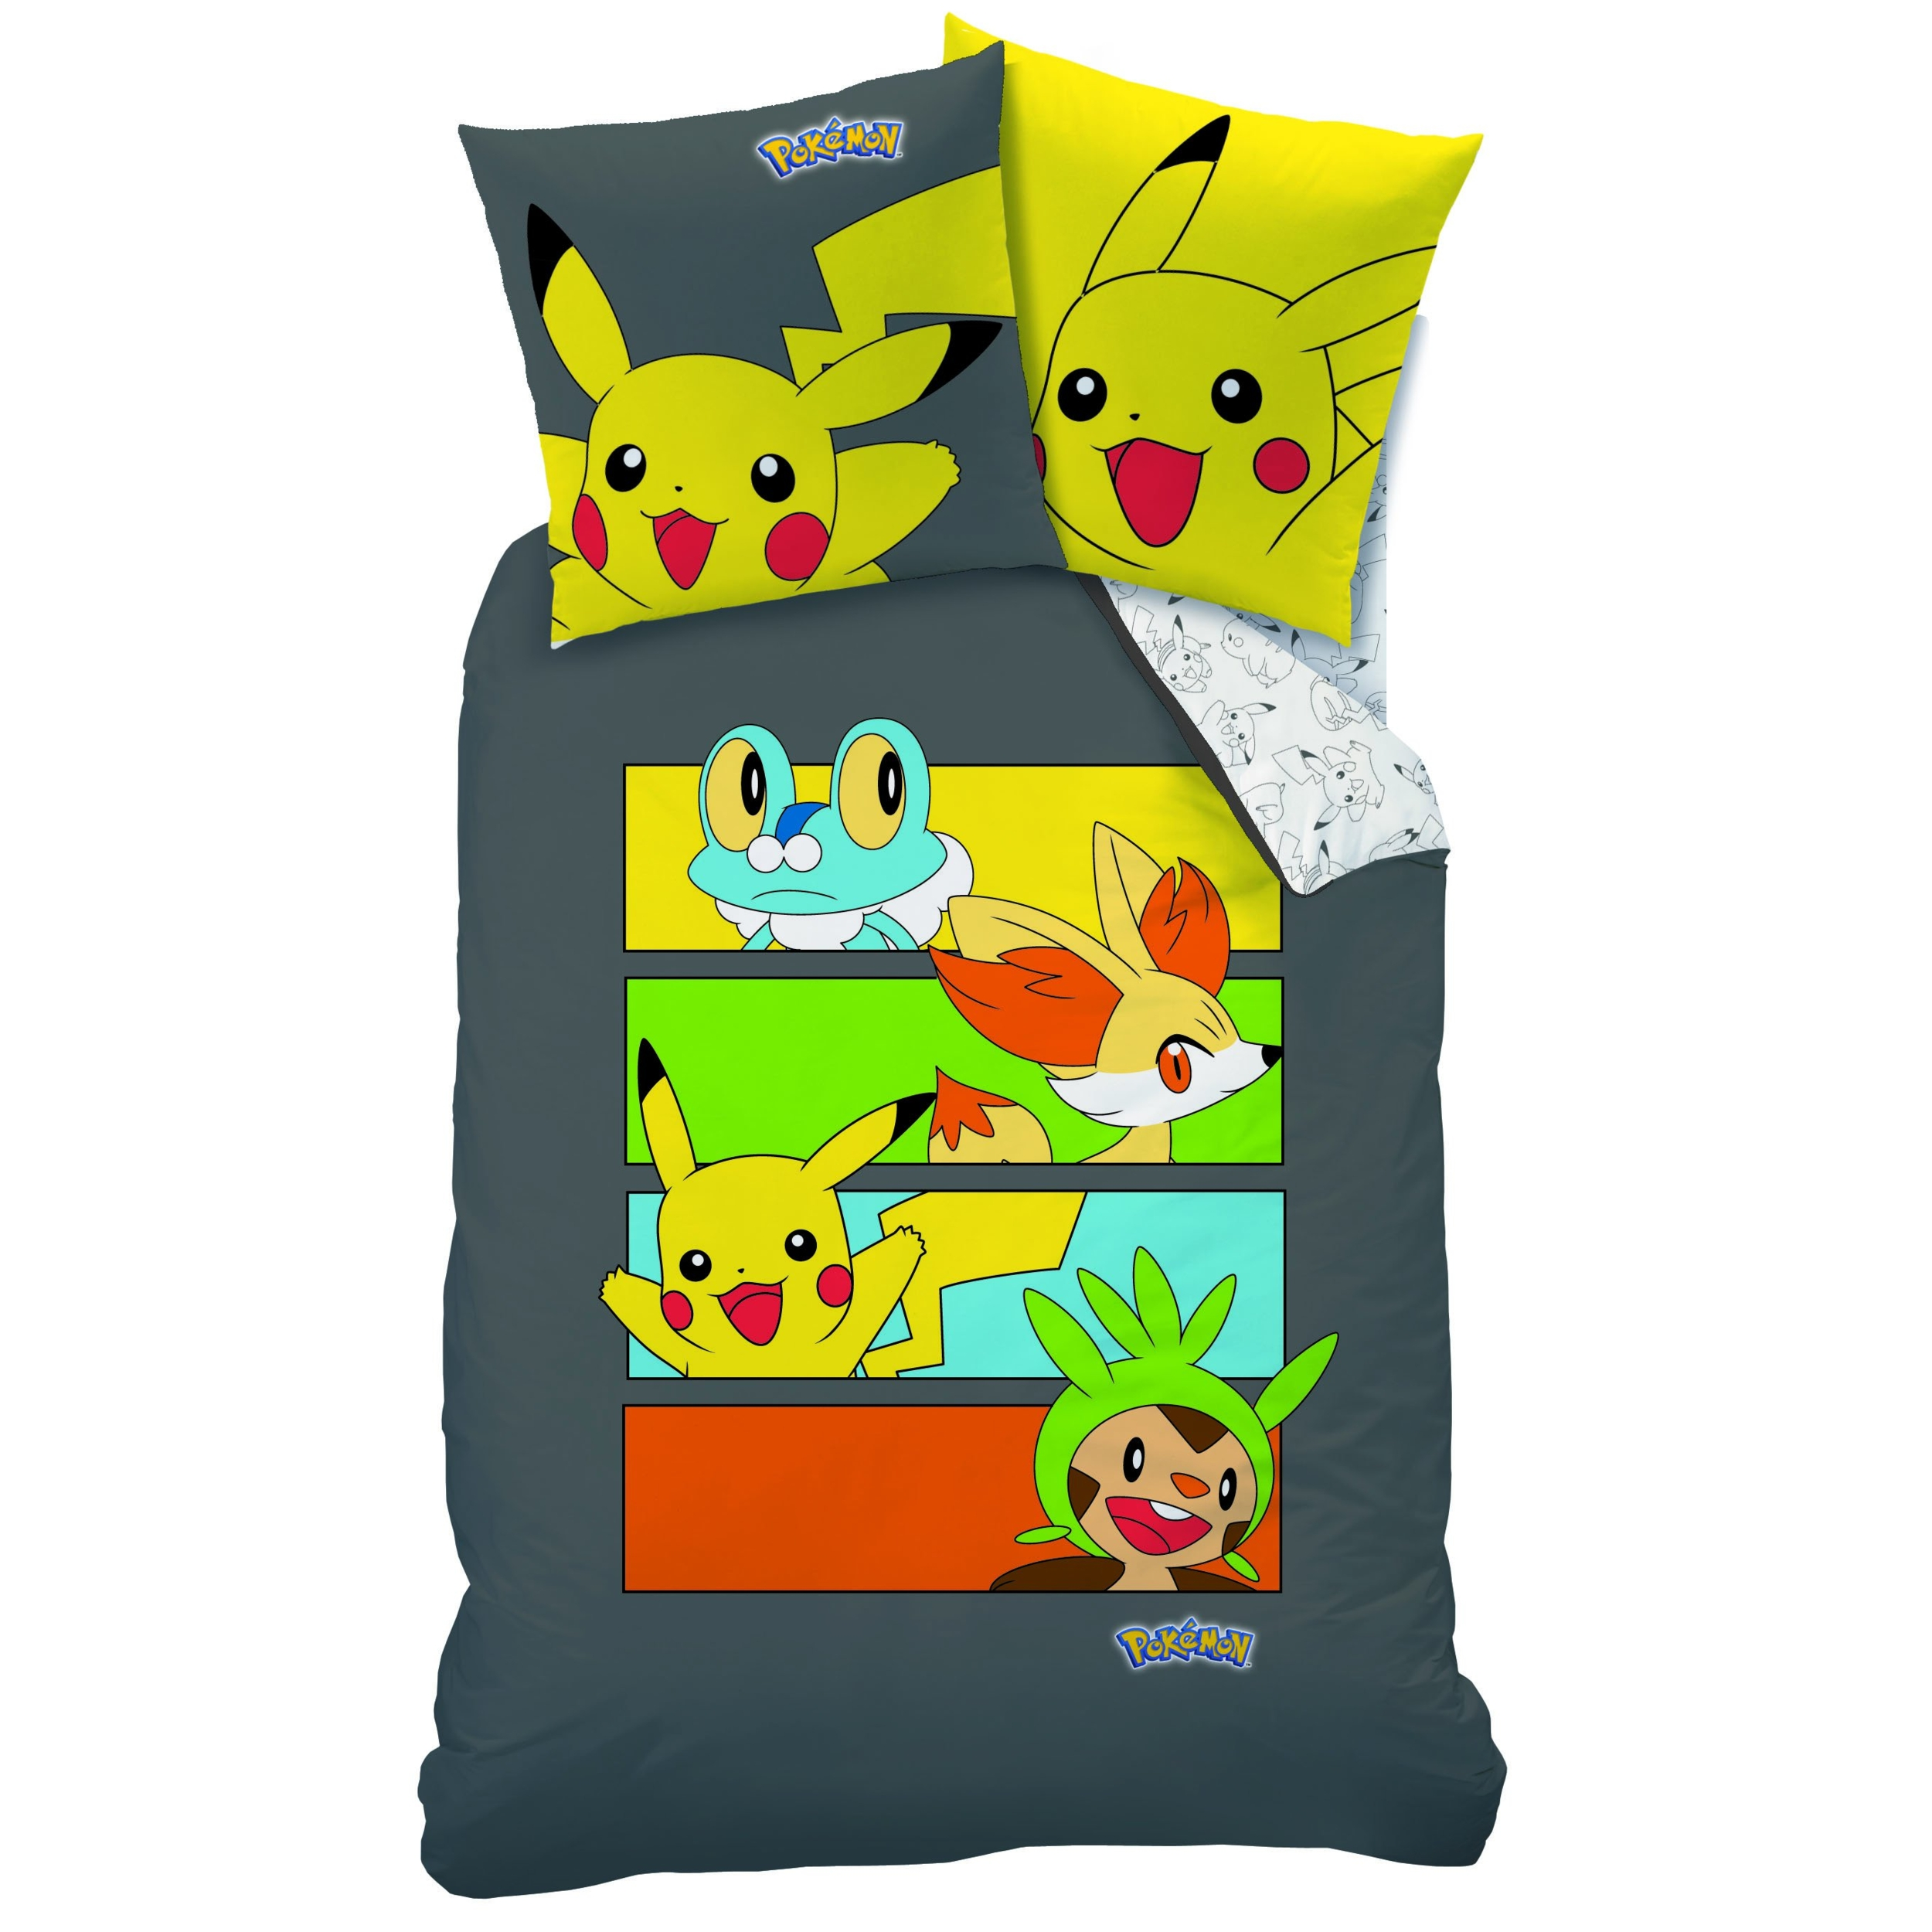 dark pokemon pixel art images pokemon images. Black Bedroom Furniture Sets. Home Design Ideas